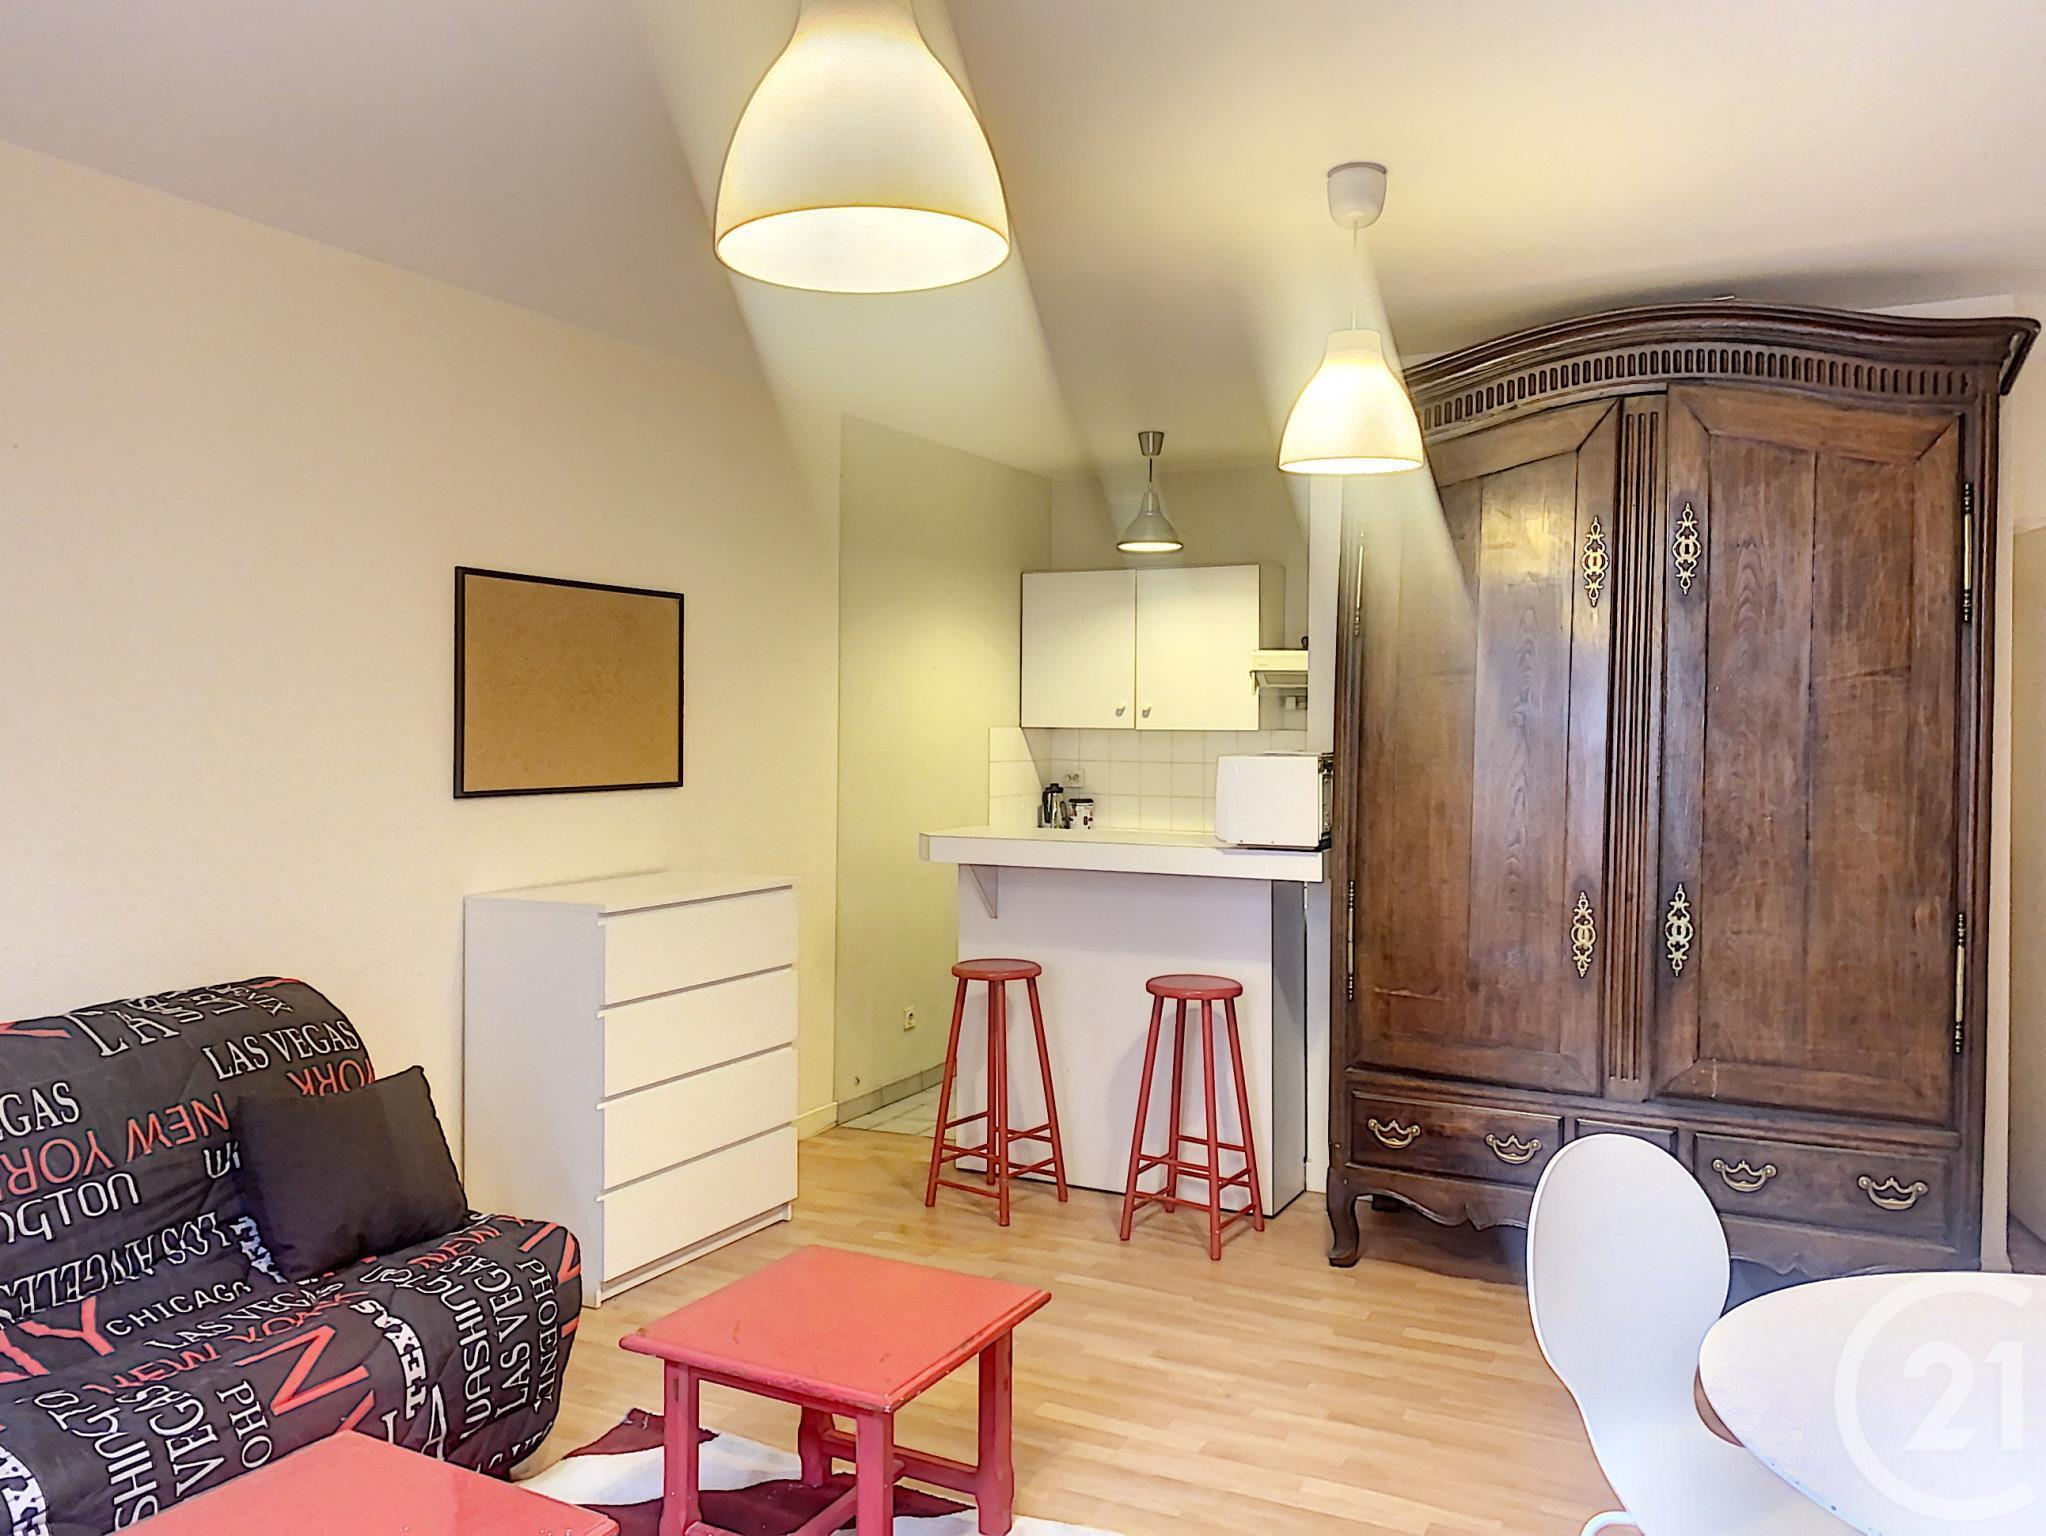 Appartement F1 à louer - 1 pièce - 40,0 m2 - TROYES - 10 - CHAMPAGNE-ARDENNE